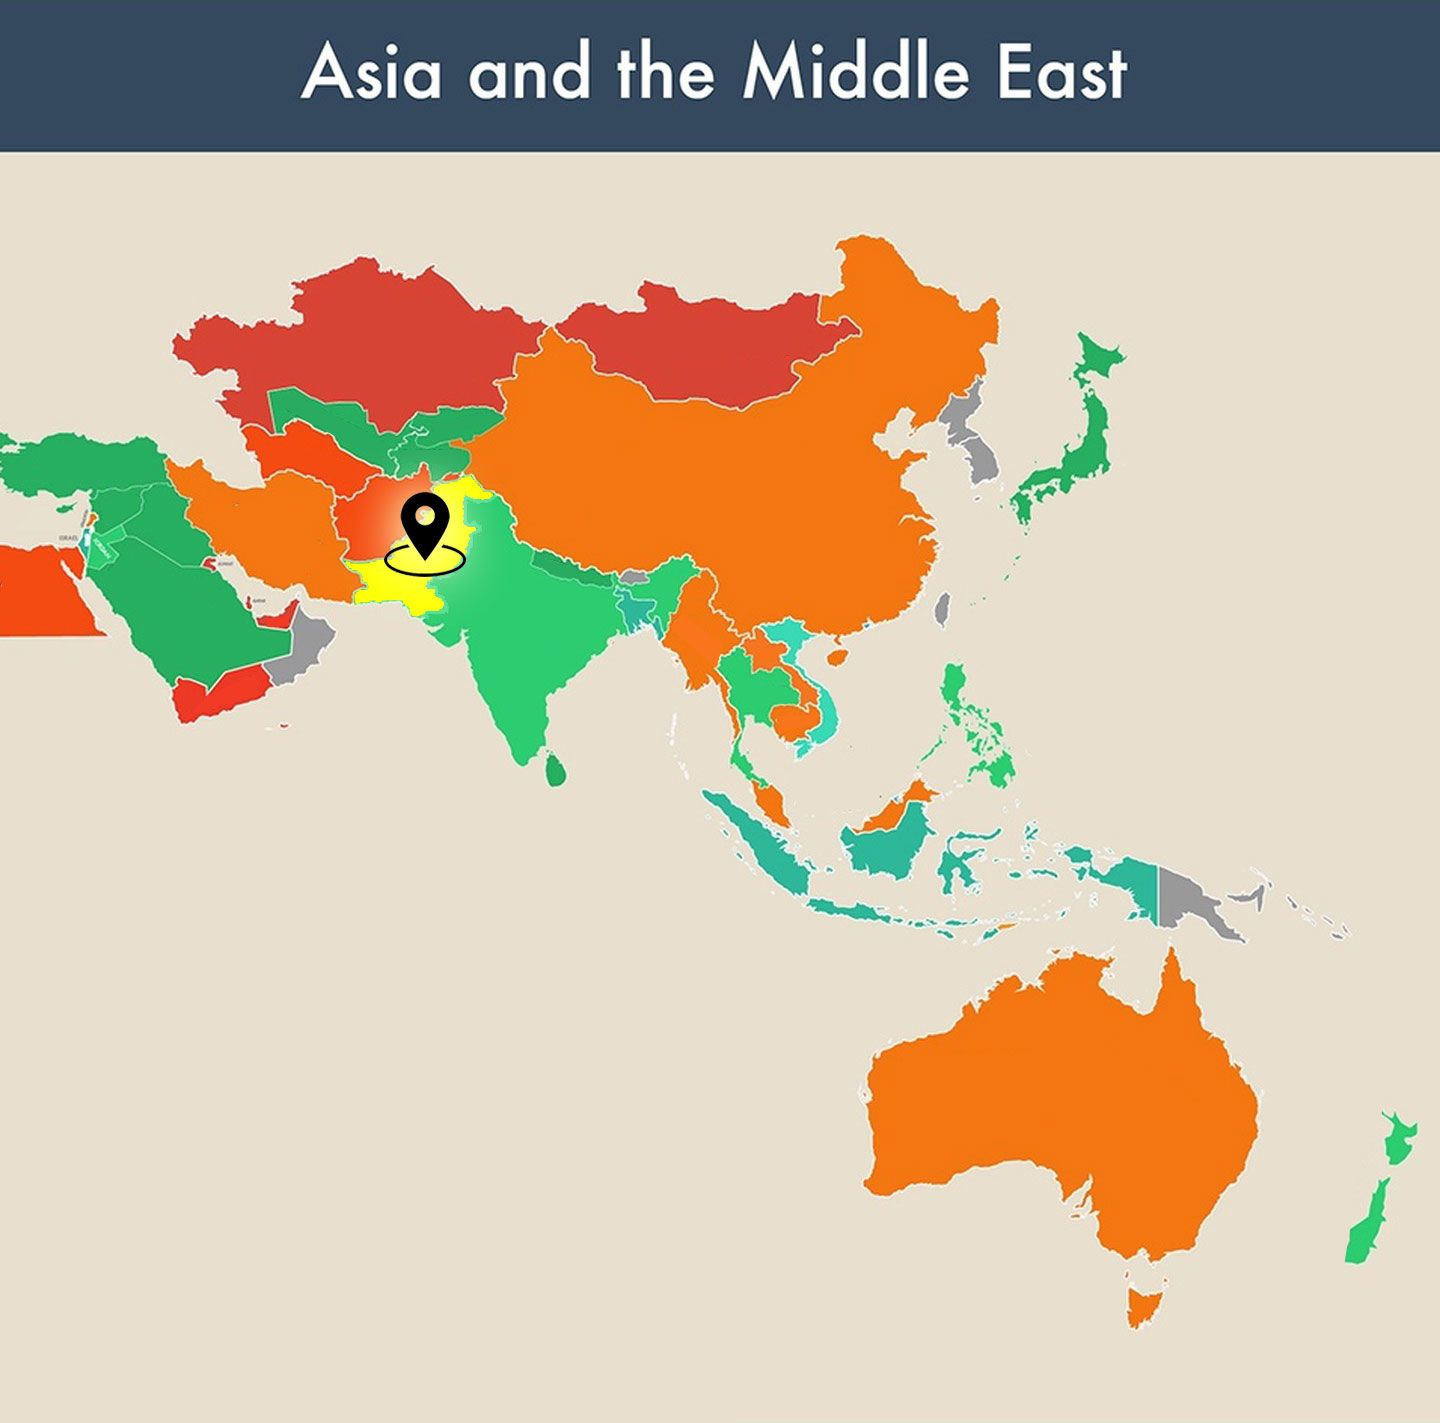 countries of the world empty map - pakistan image